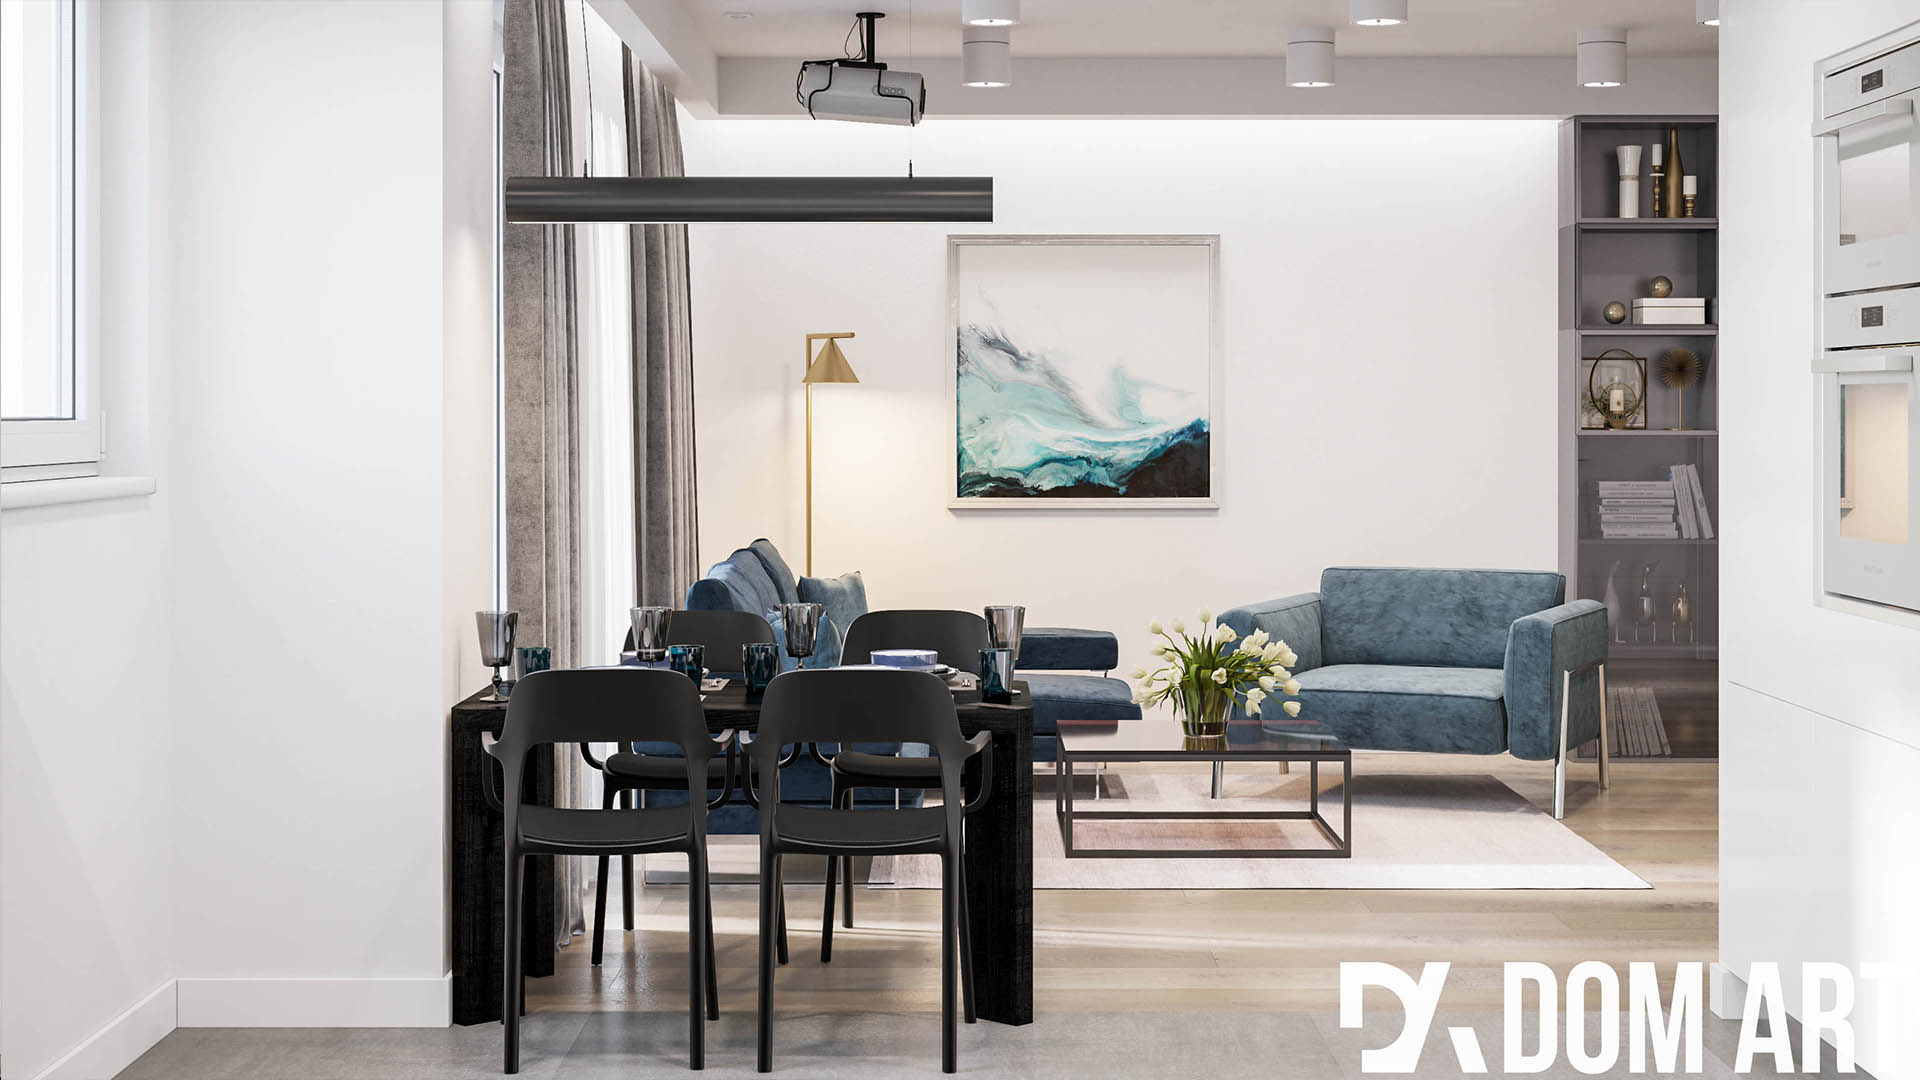 Dom Art- Mastering the Art of Residential and Commercial Design_2 commercial design Dom Art: Mastering the Art of Residential and Commercial Design Dom Art Mastering the Art of Residential and Commercial Design 2